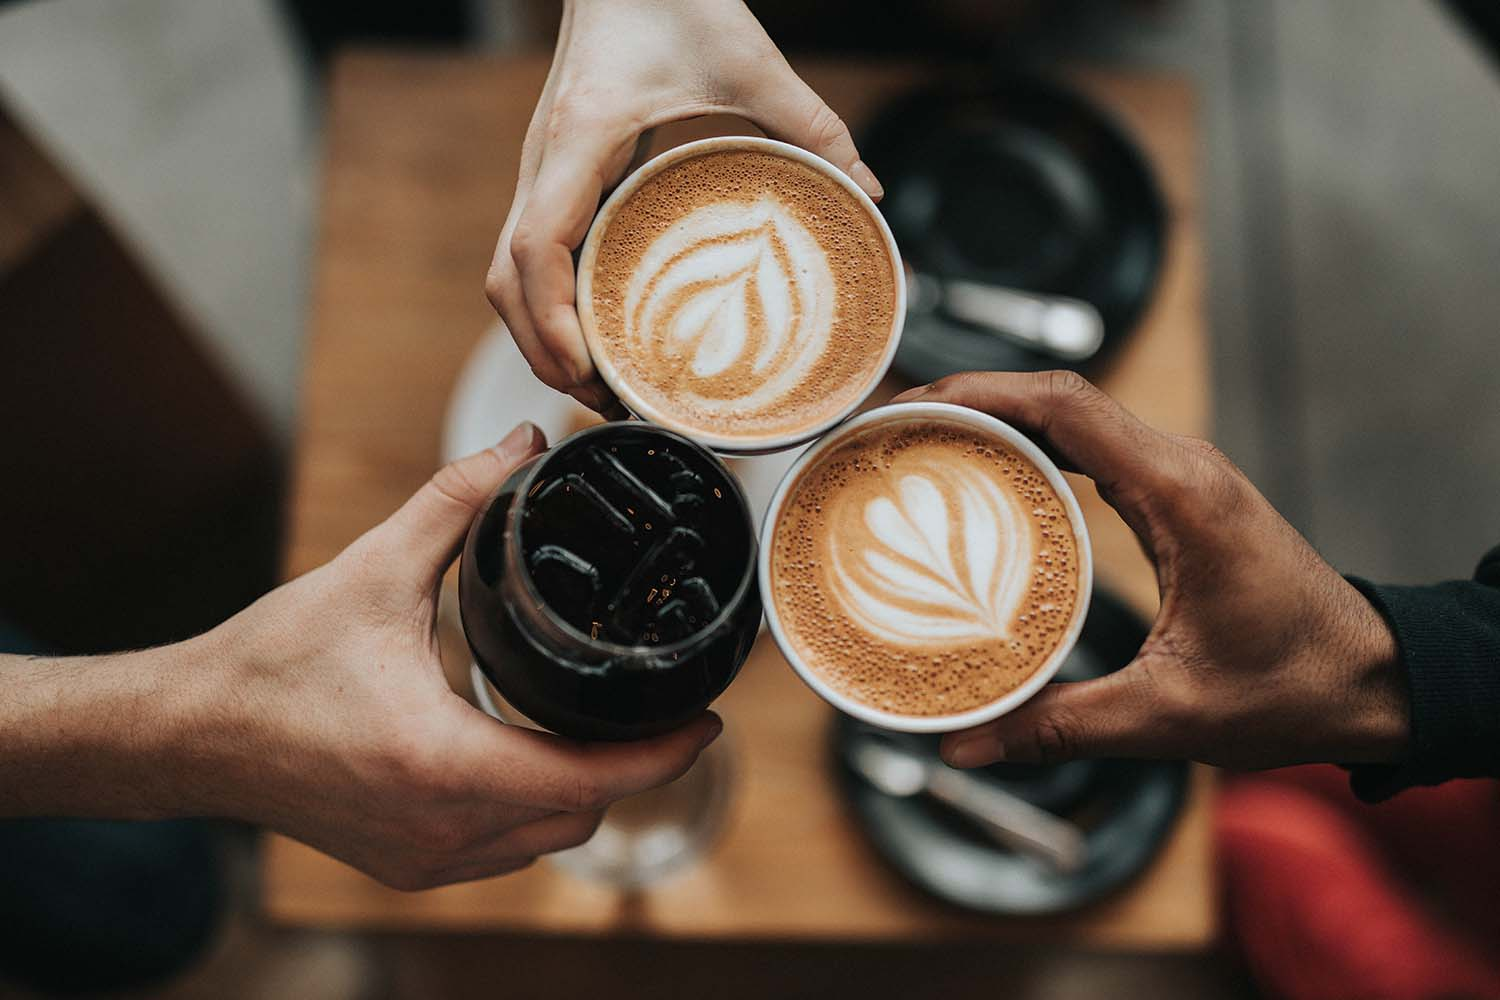 Get the Most Out of Drinking Coffee, a Simple Guide